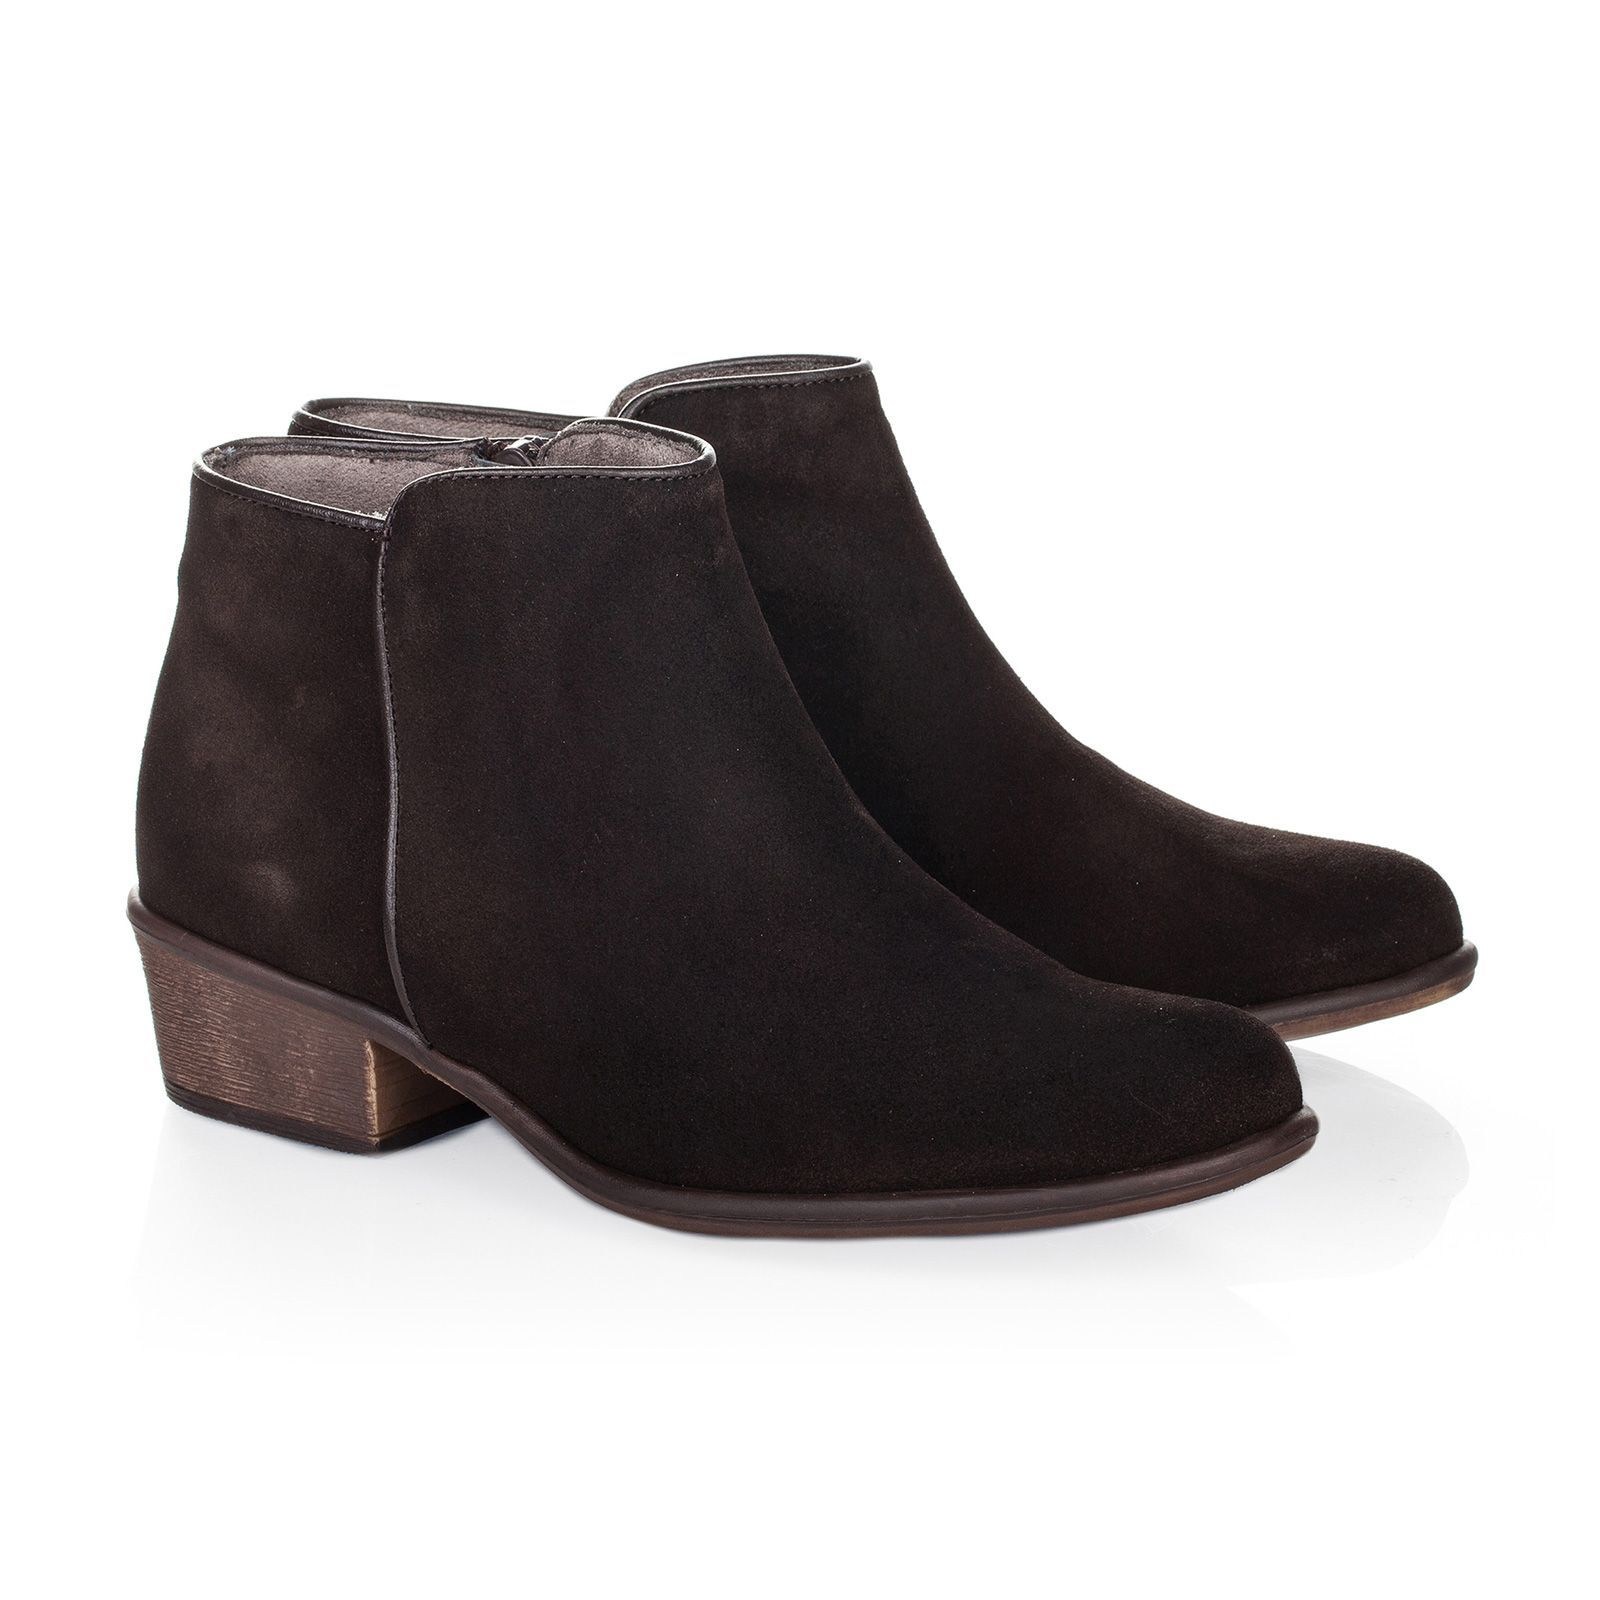 Maria Barcelo Bottines en cuir - noir